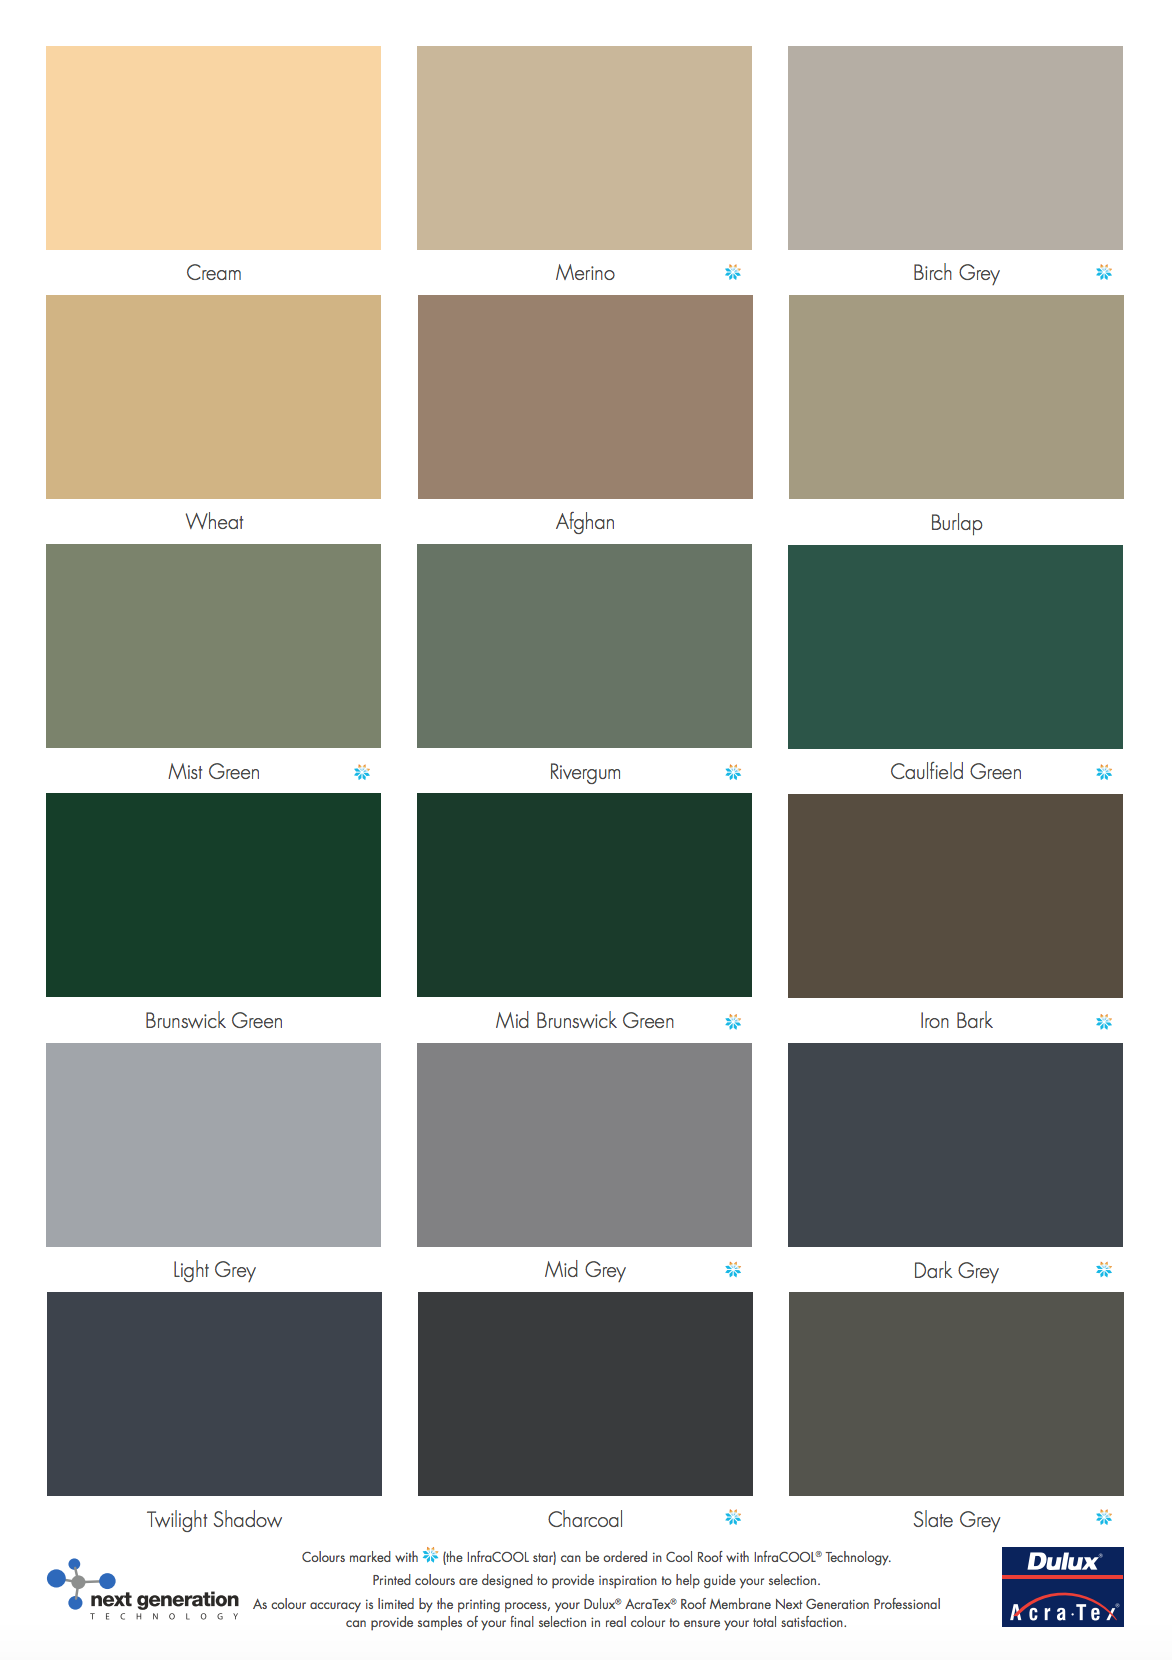 dulux colour chart related keywords suggestions dulux colour chart